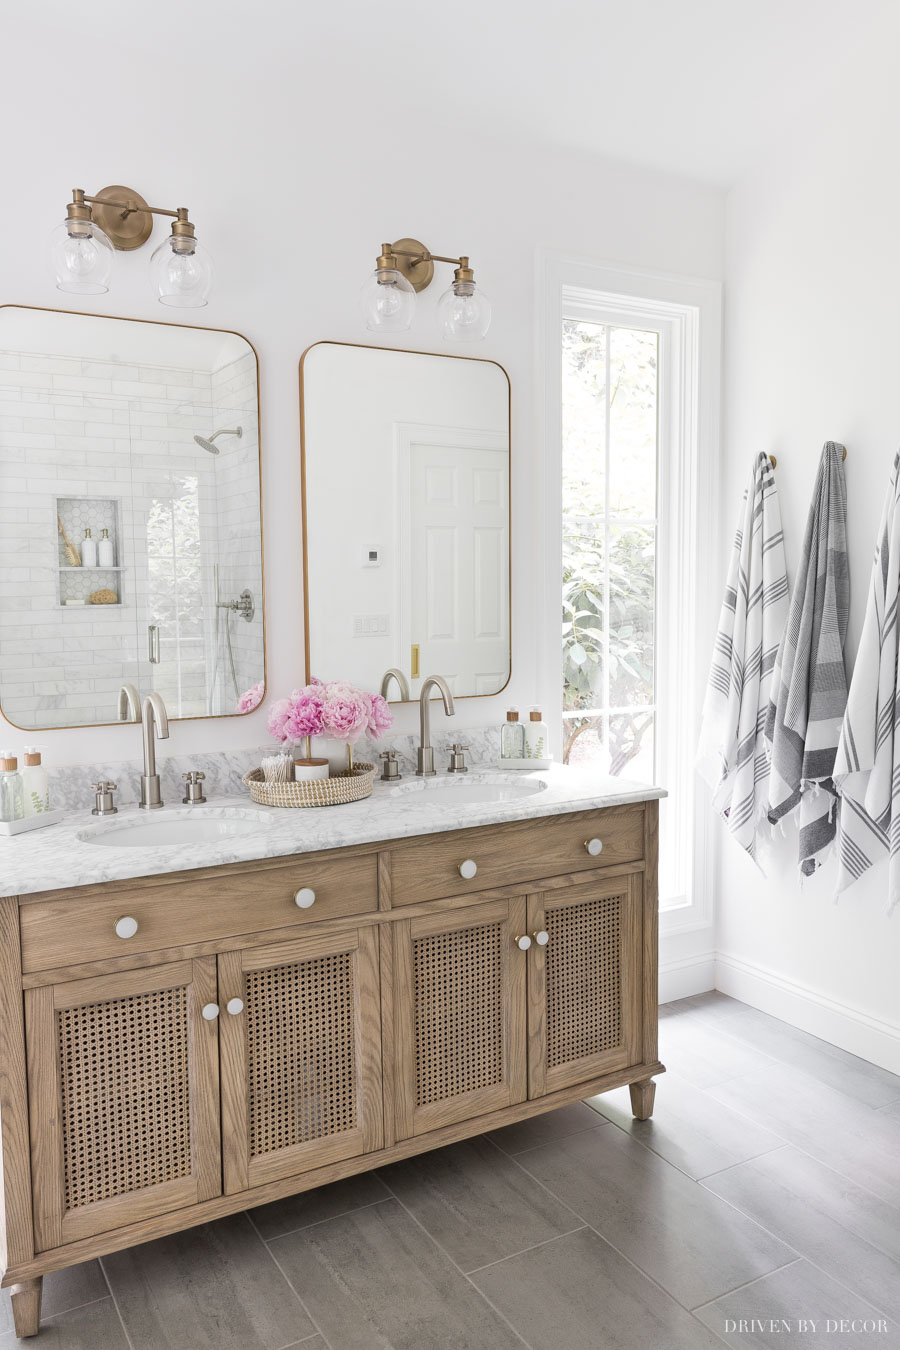 So in love with this bathroom vanity and wall with towel hooks!